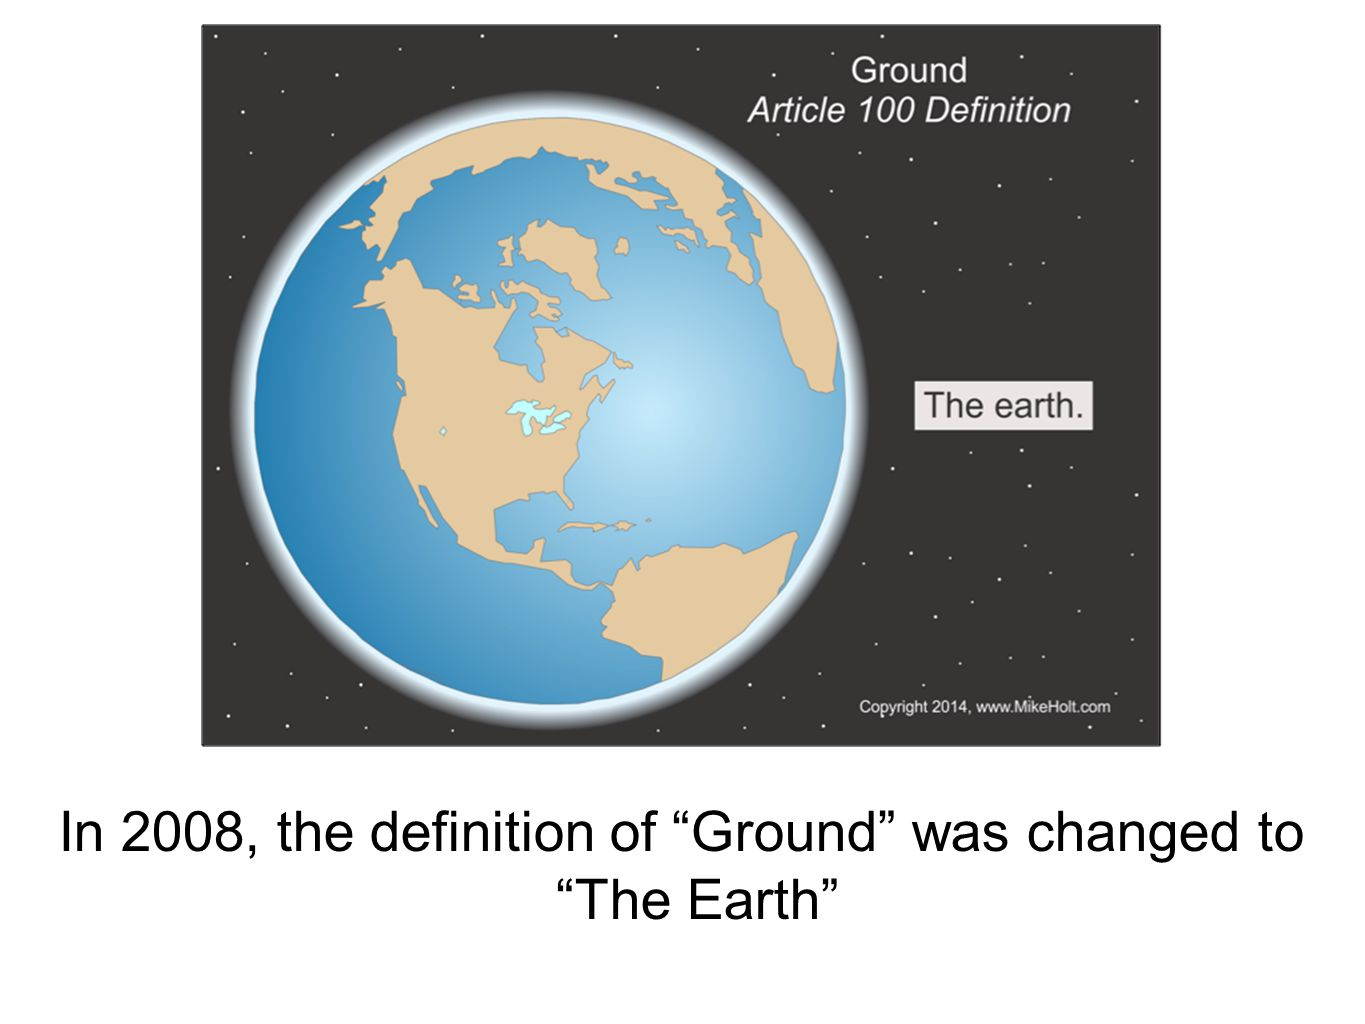 In 2008, the definition of Ground was changed to The Earth